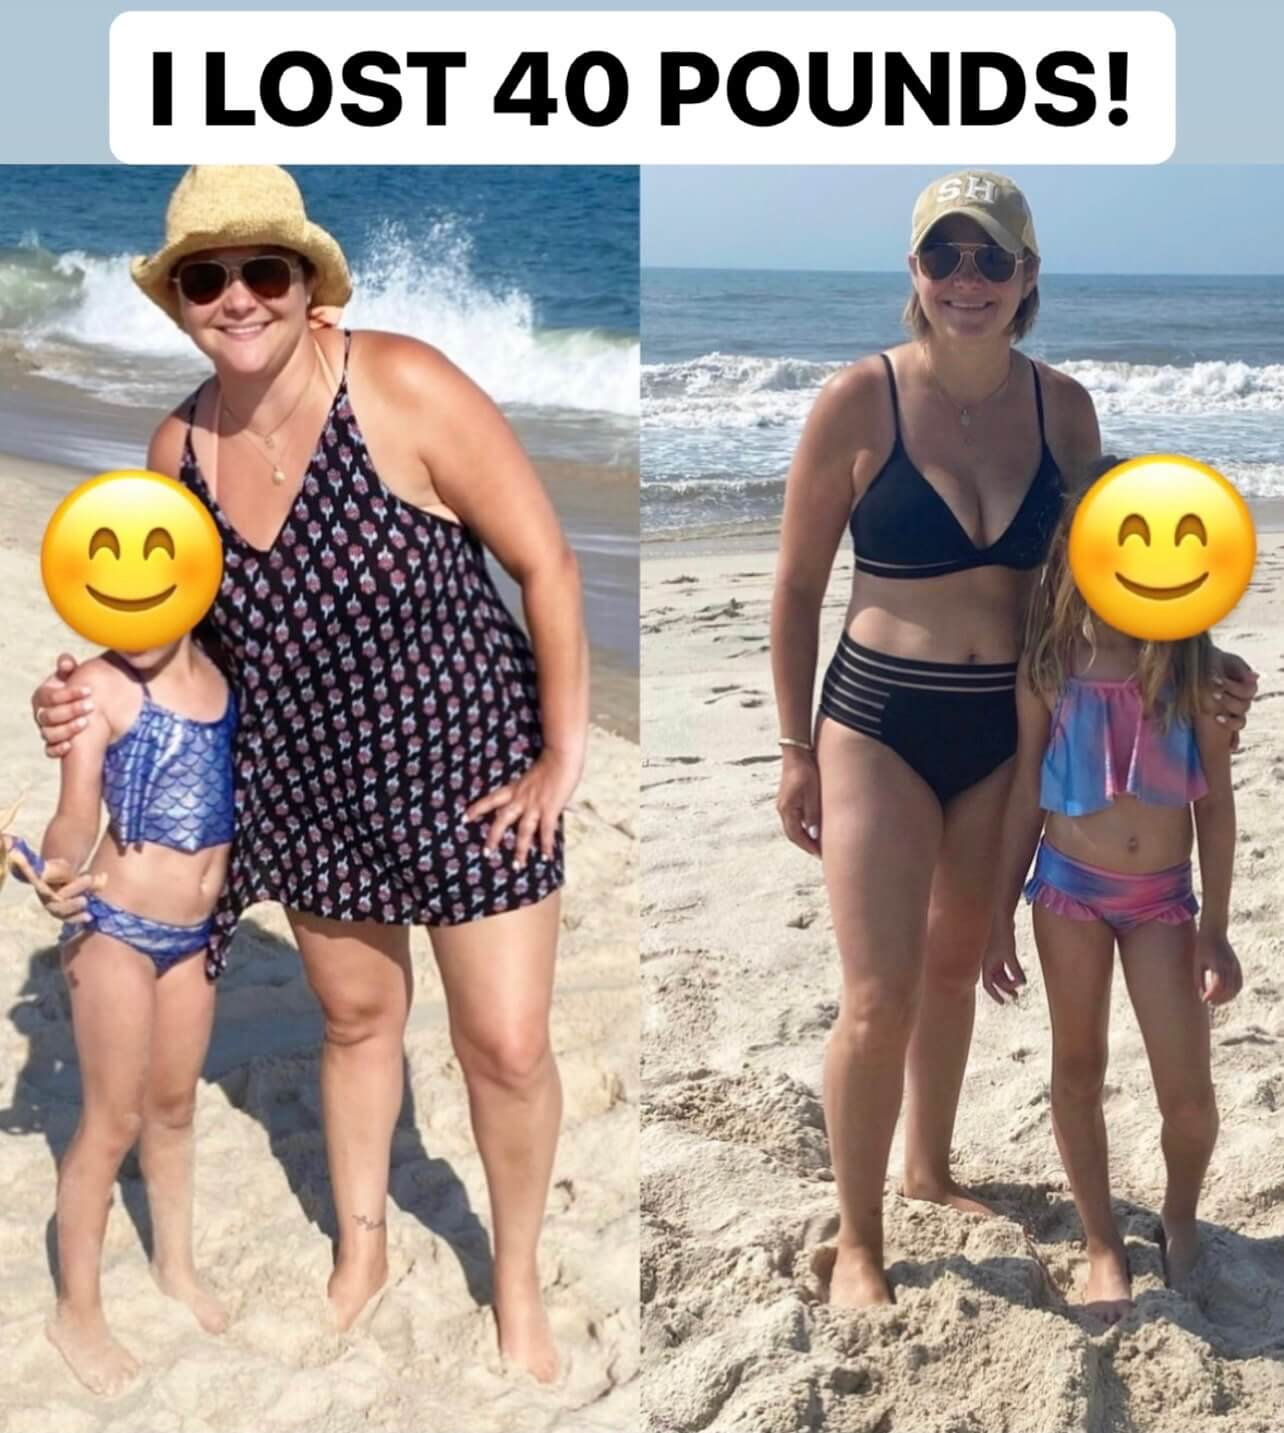 Real Deal Success - Down 40 pounds